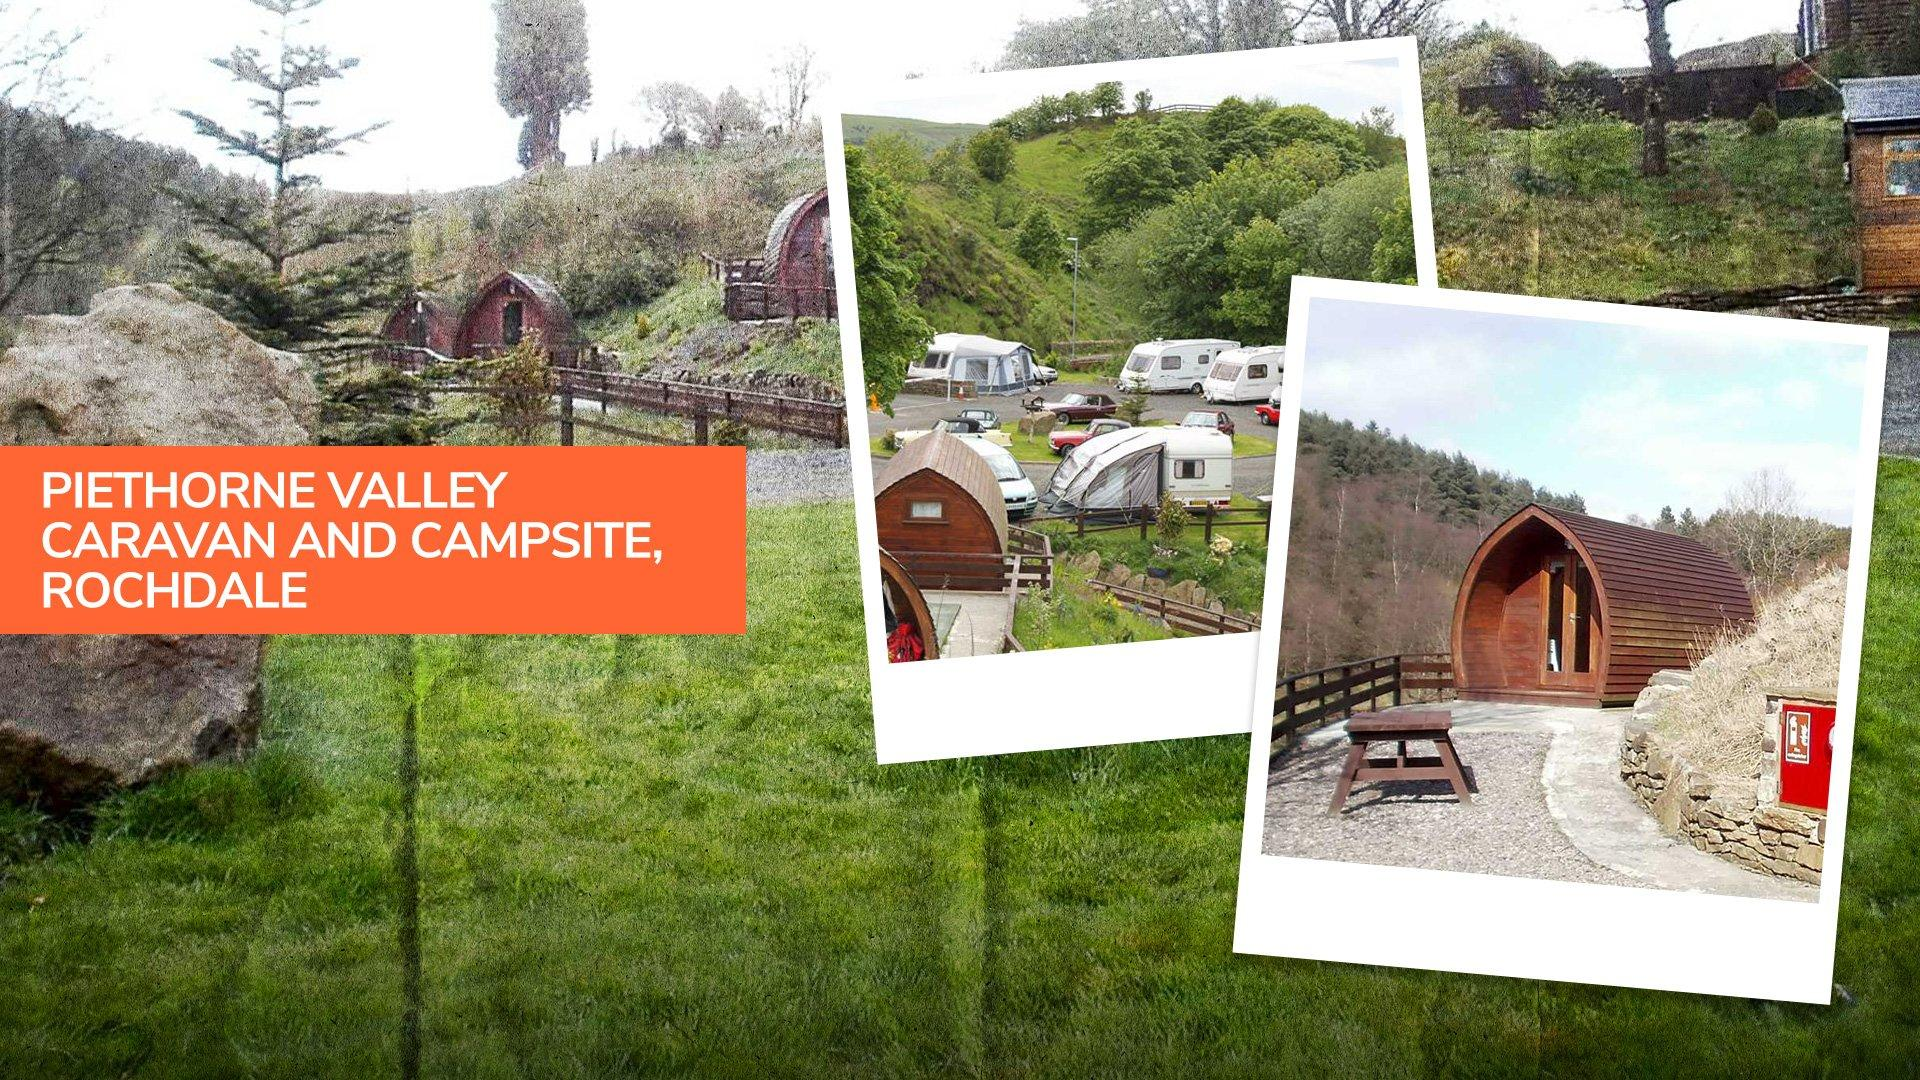 Piethorne Valley Caravan and Camping Site in Rochdale, a peaceful campsite just outside Manchester